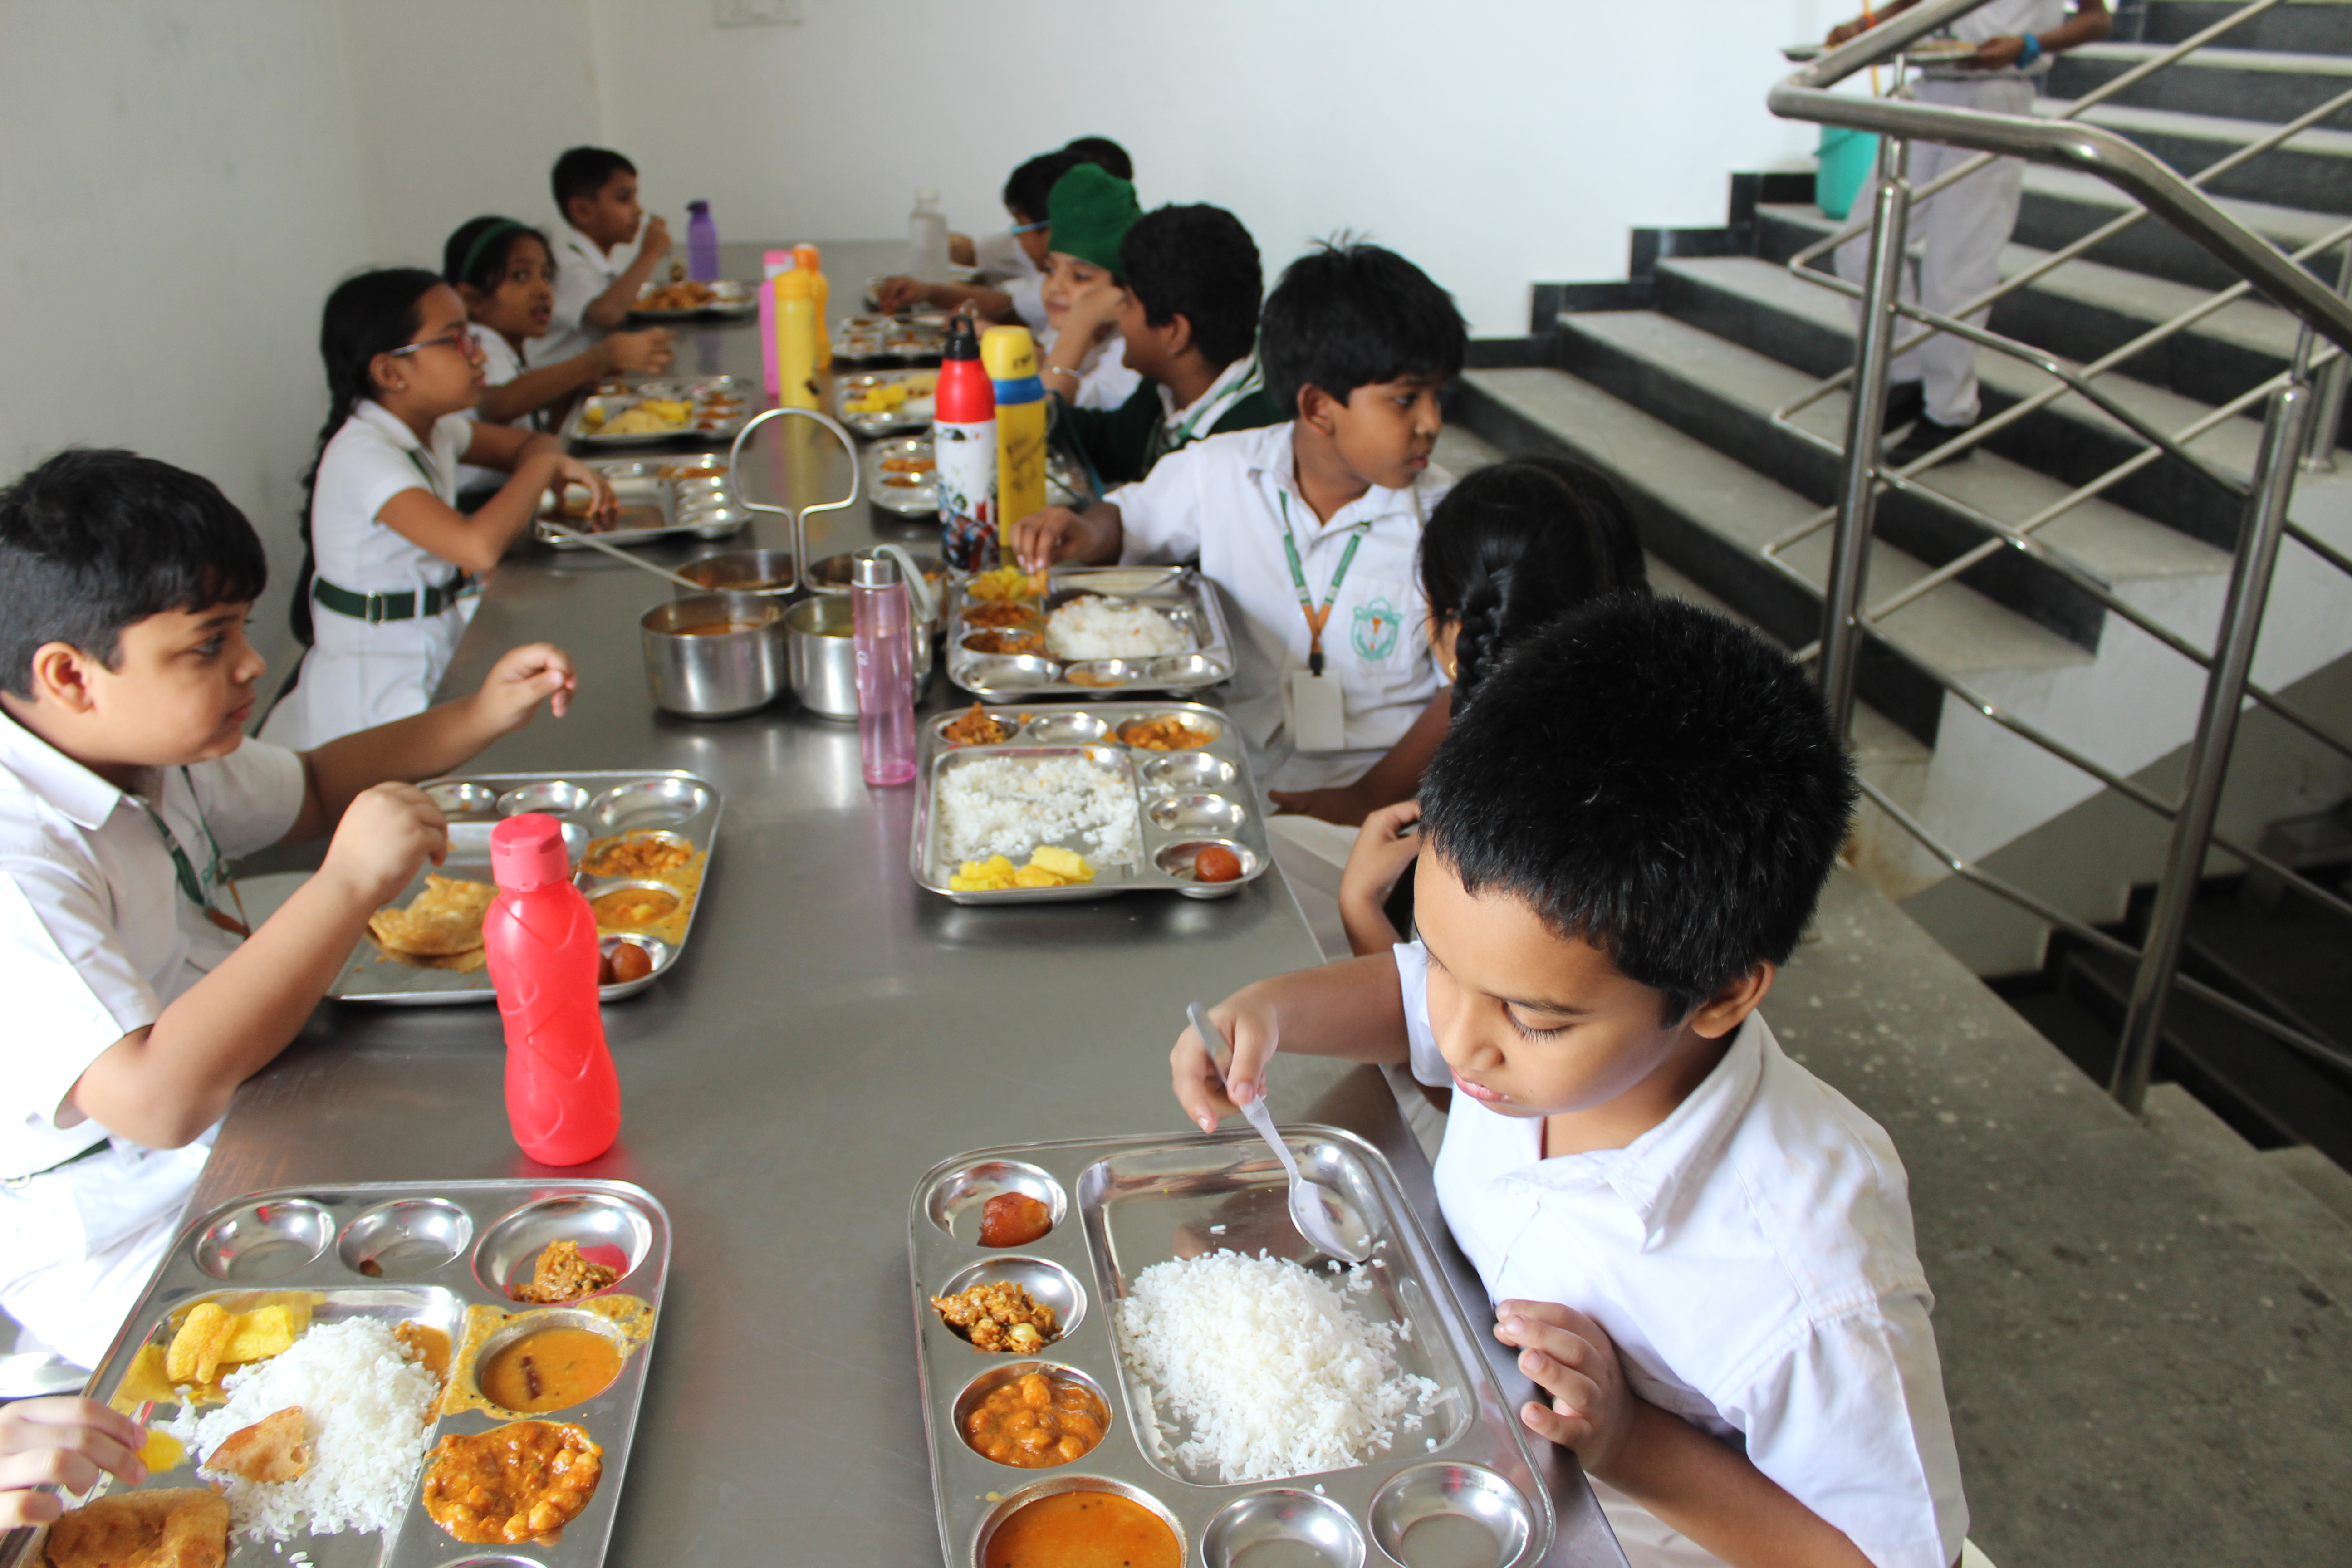 Students eating their lunch